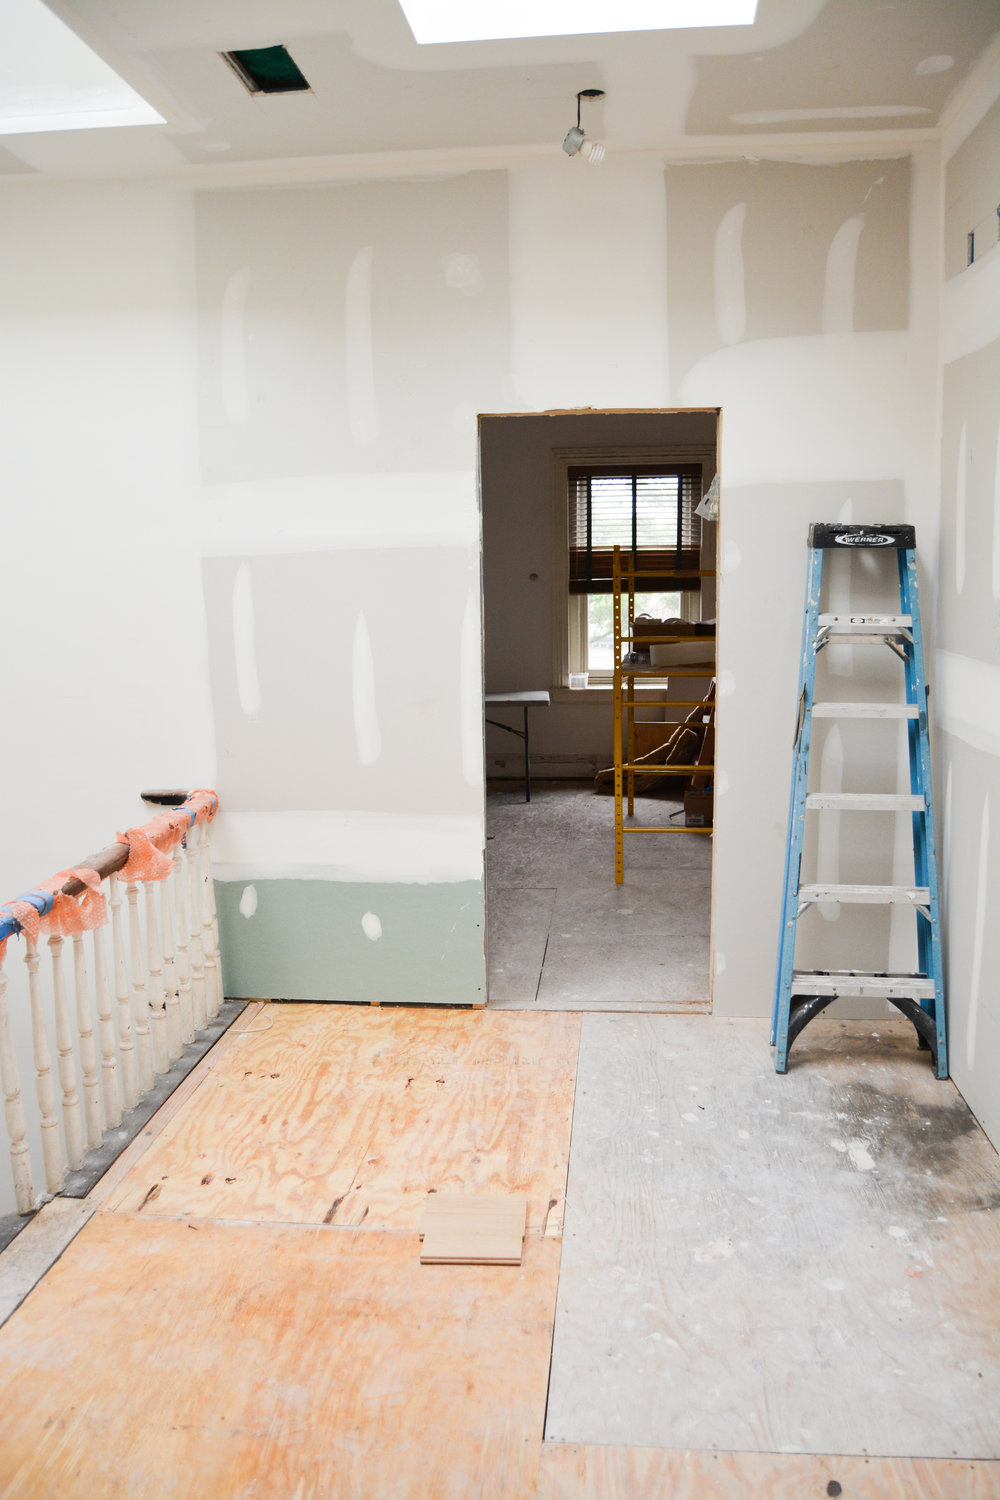 Reno Update Rowhouse Revival Wiring Behind Wall Finally One Of The Most Visible Changes Past Few Days Is Drywall Having Passed Inspection We Could Hide All Wires Smooth Walls